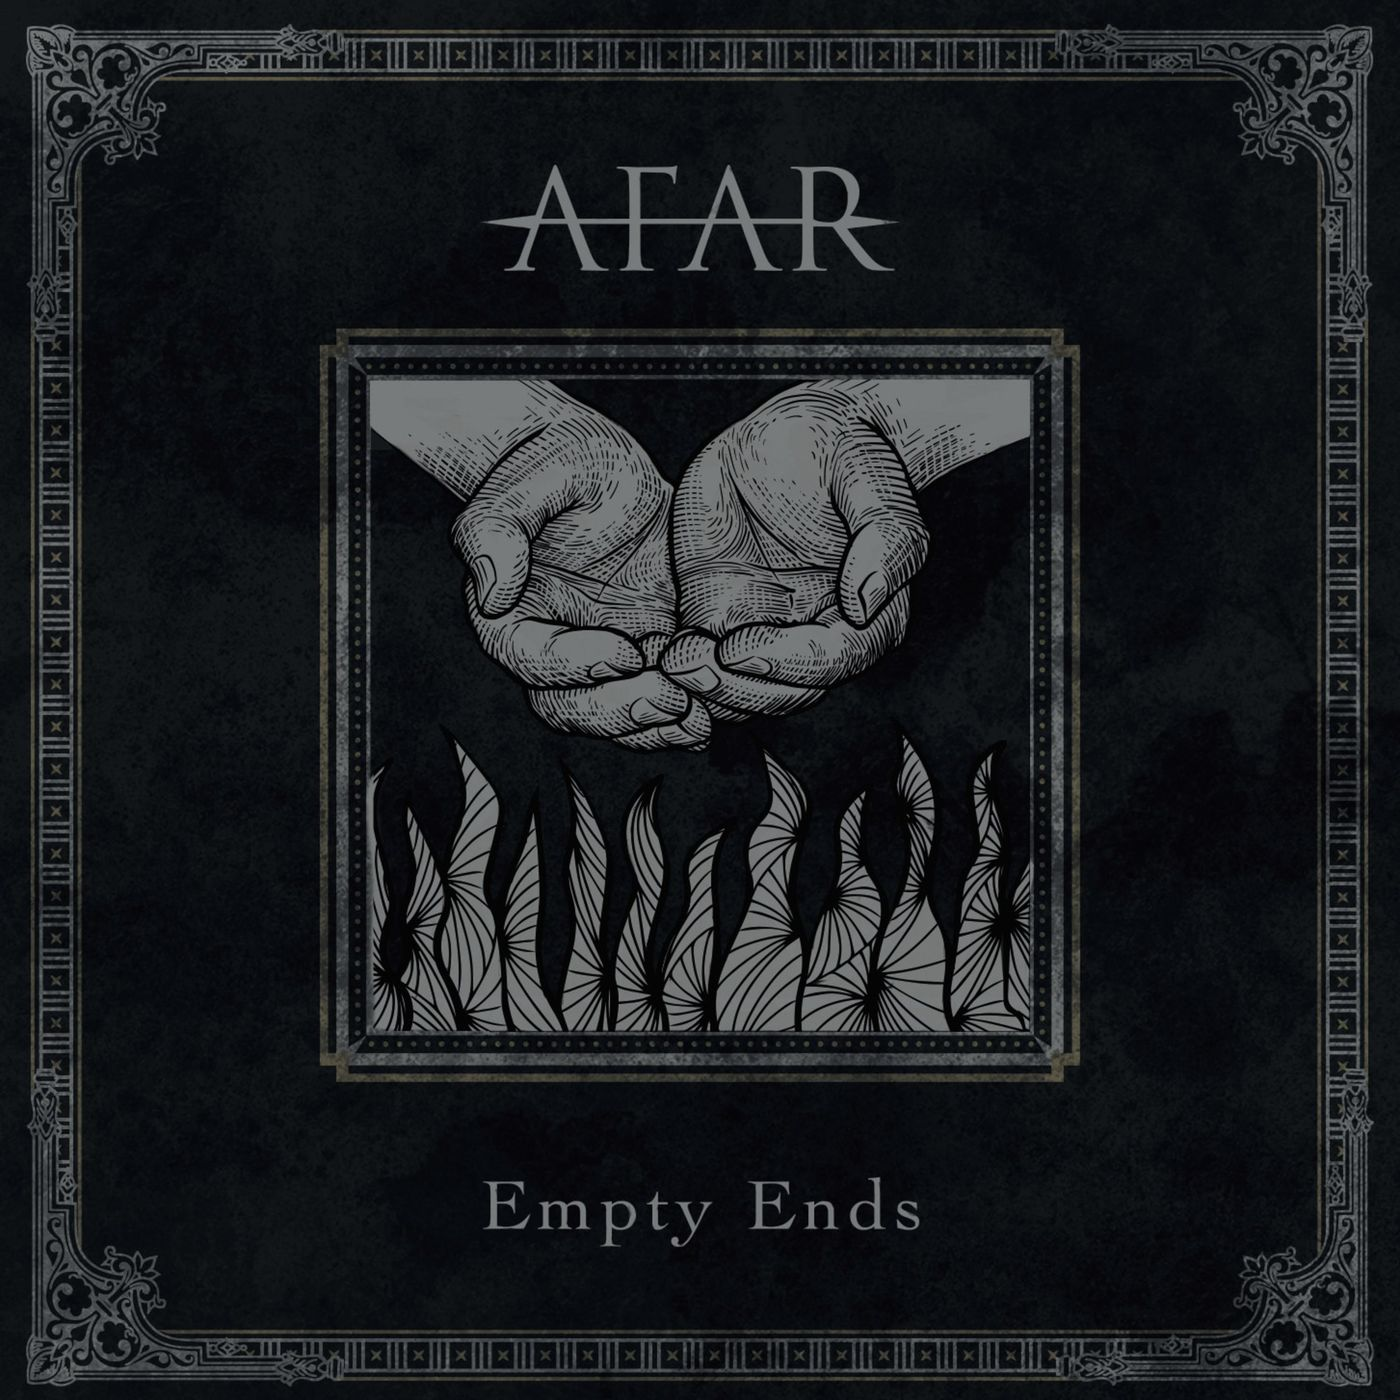 AFAR - Empty Ends (2019)